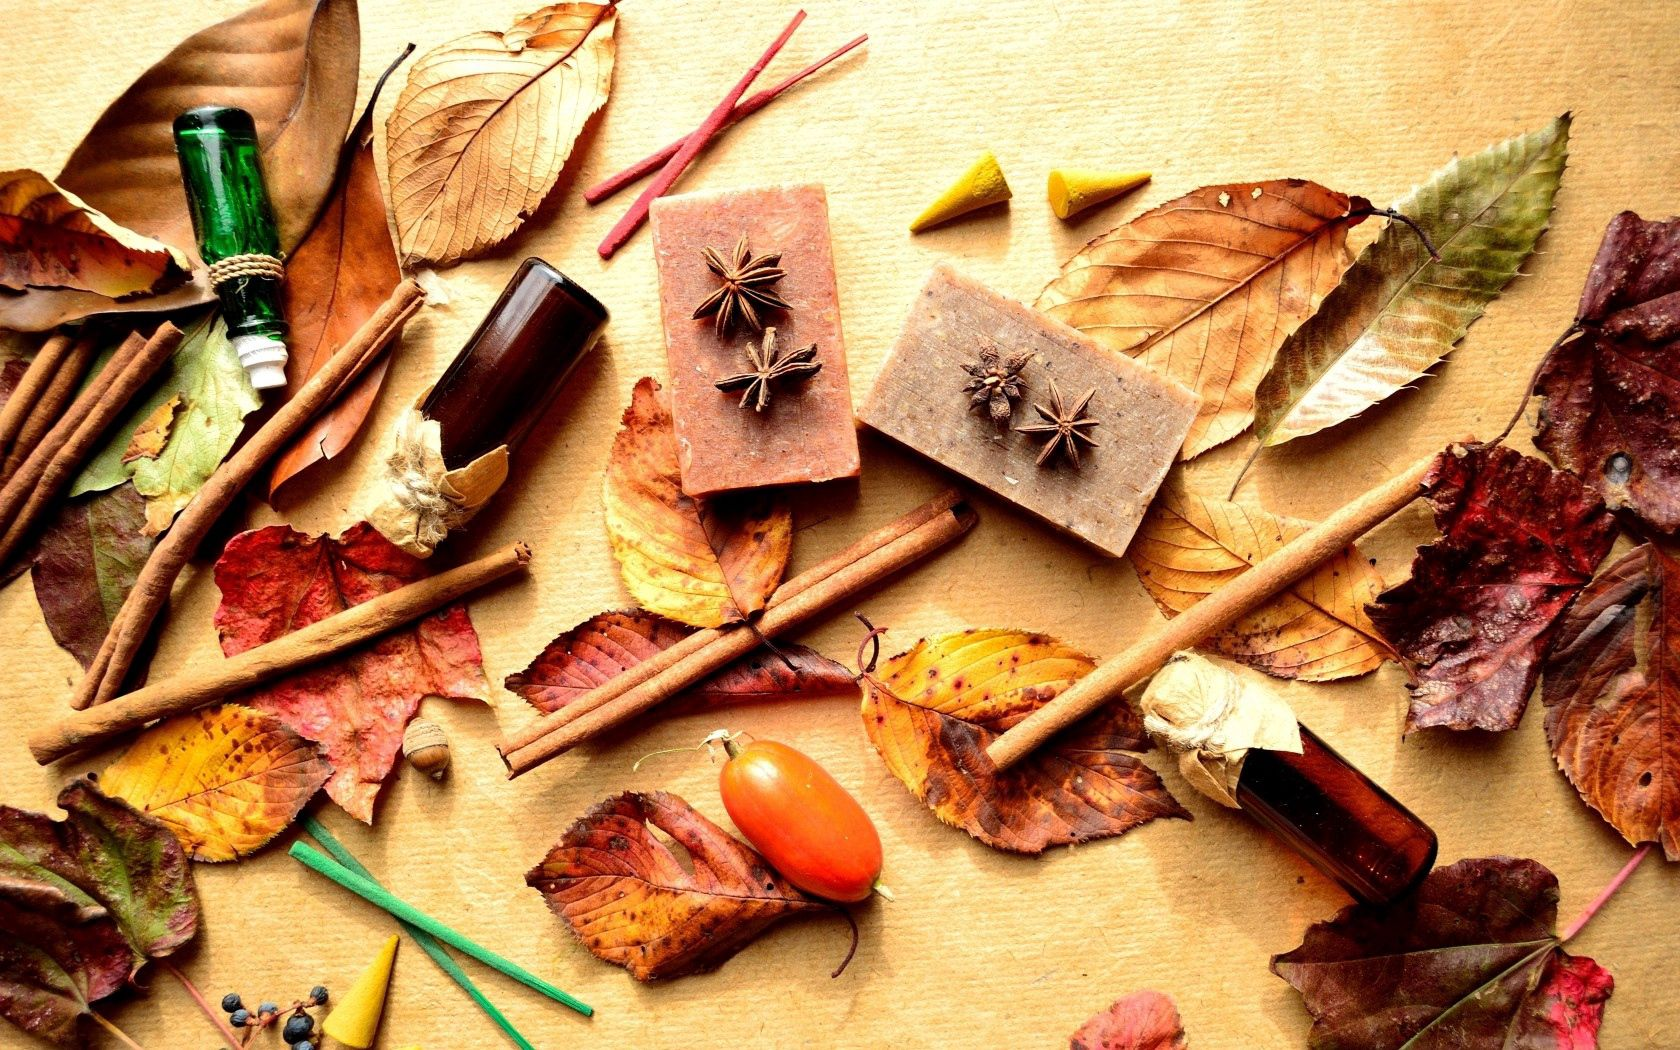 71373 download wallpaper Miscellanea, Miscellaneous, Vials, Bottles, Leaves, Barberry, Berries, Cinnamon screensavers and pictures for free